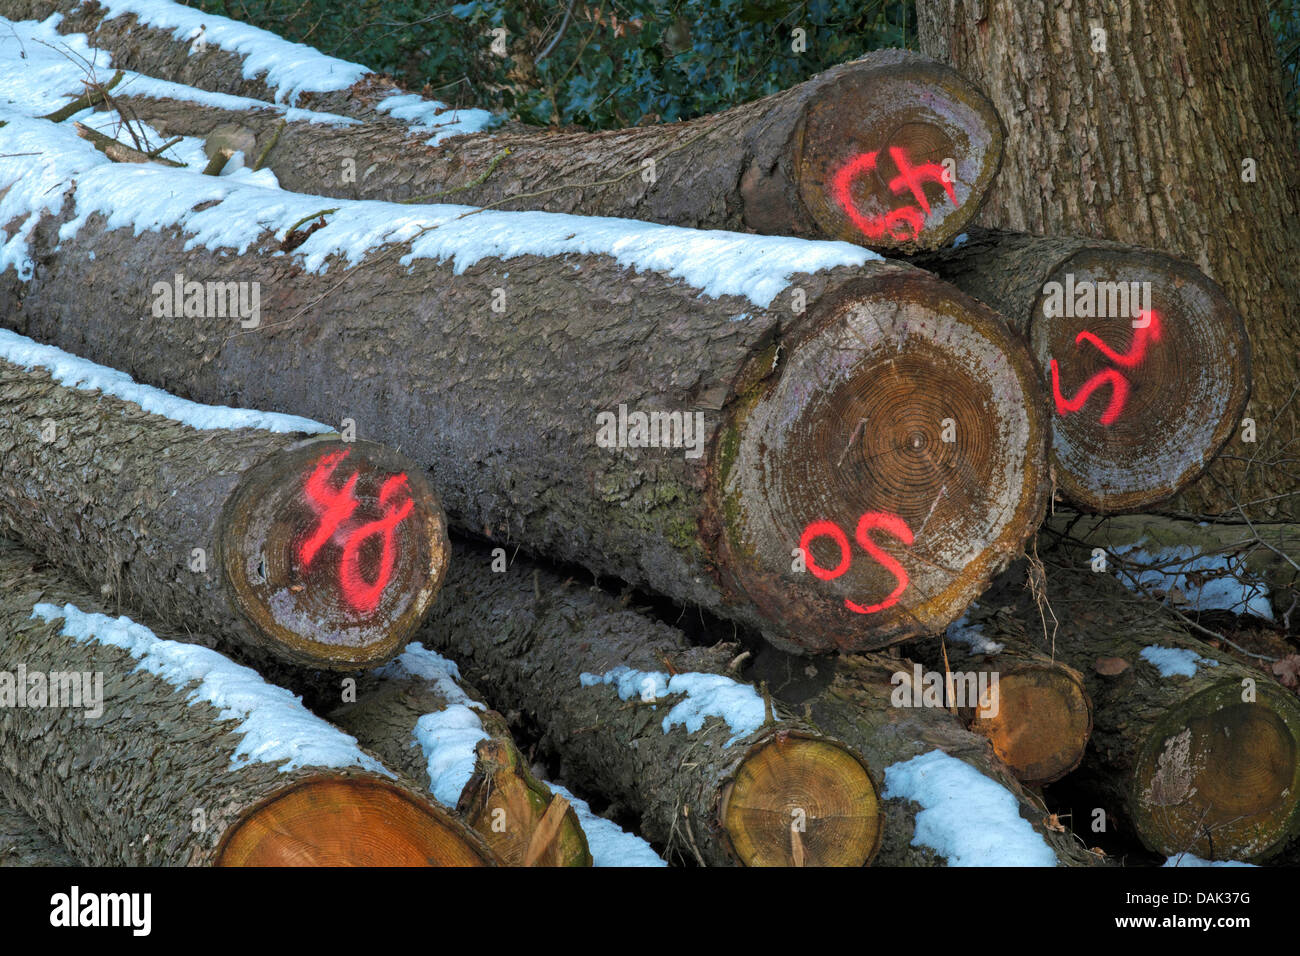 stored and marked trimmed timbers at the forest edge, Germany - Stock Image